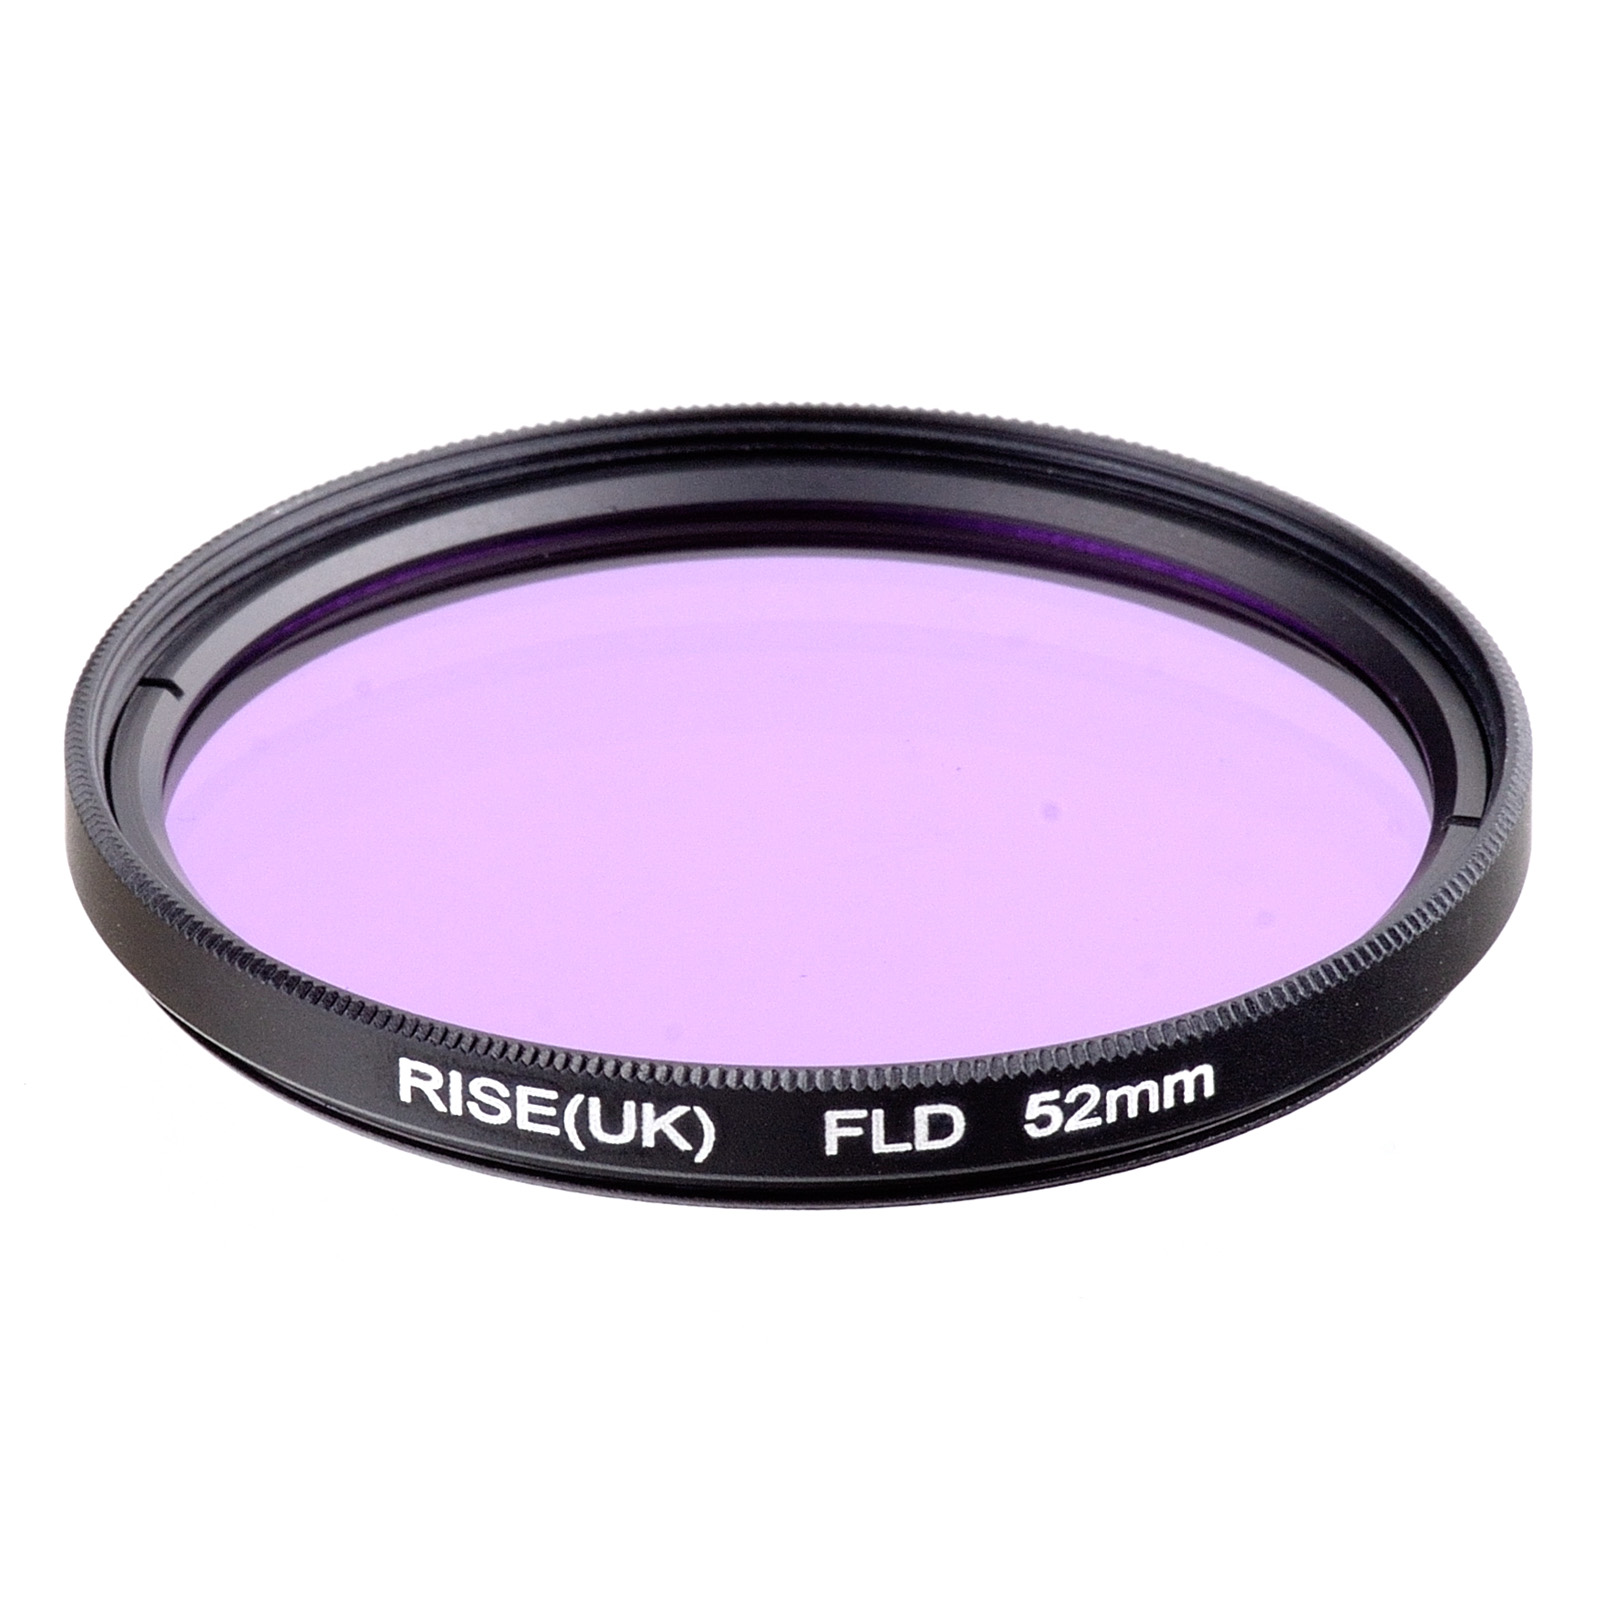 RISE 52mm FLD Lens Filter For Nikon Canon sony DLSR camera free shipping ...